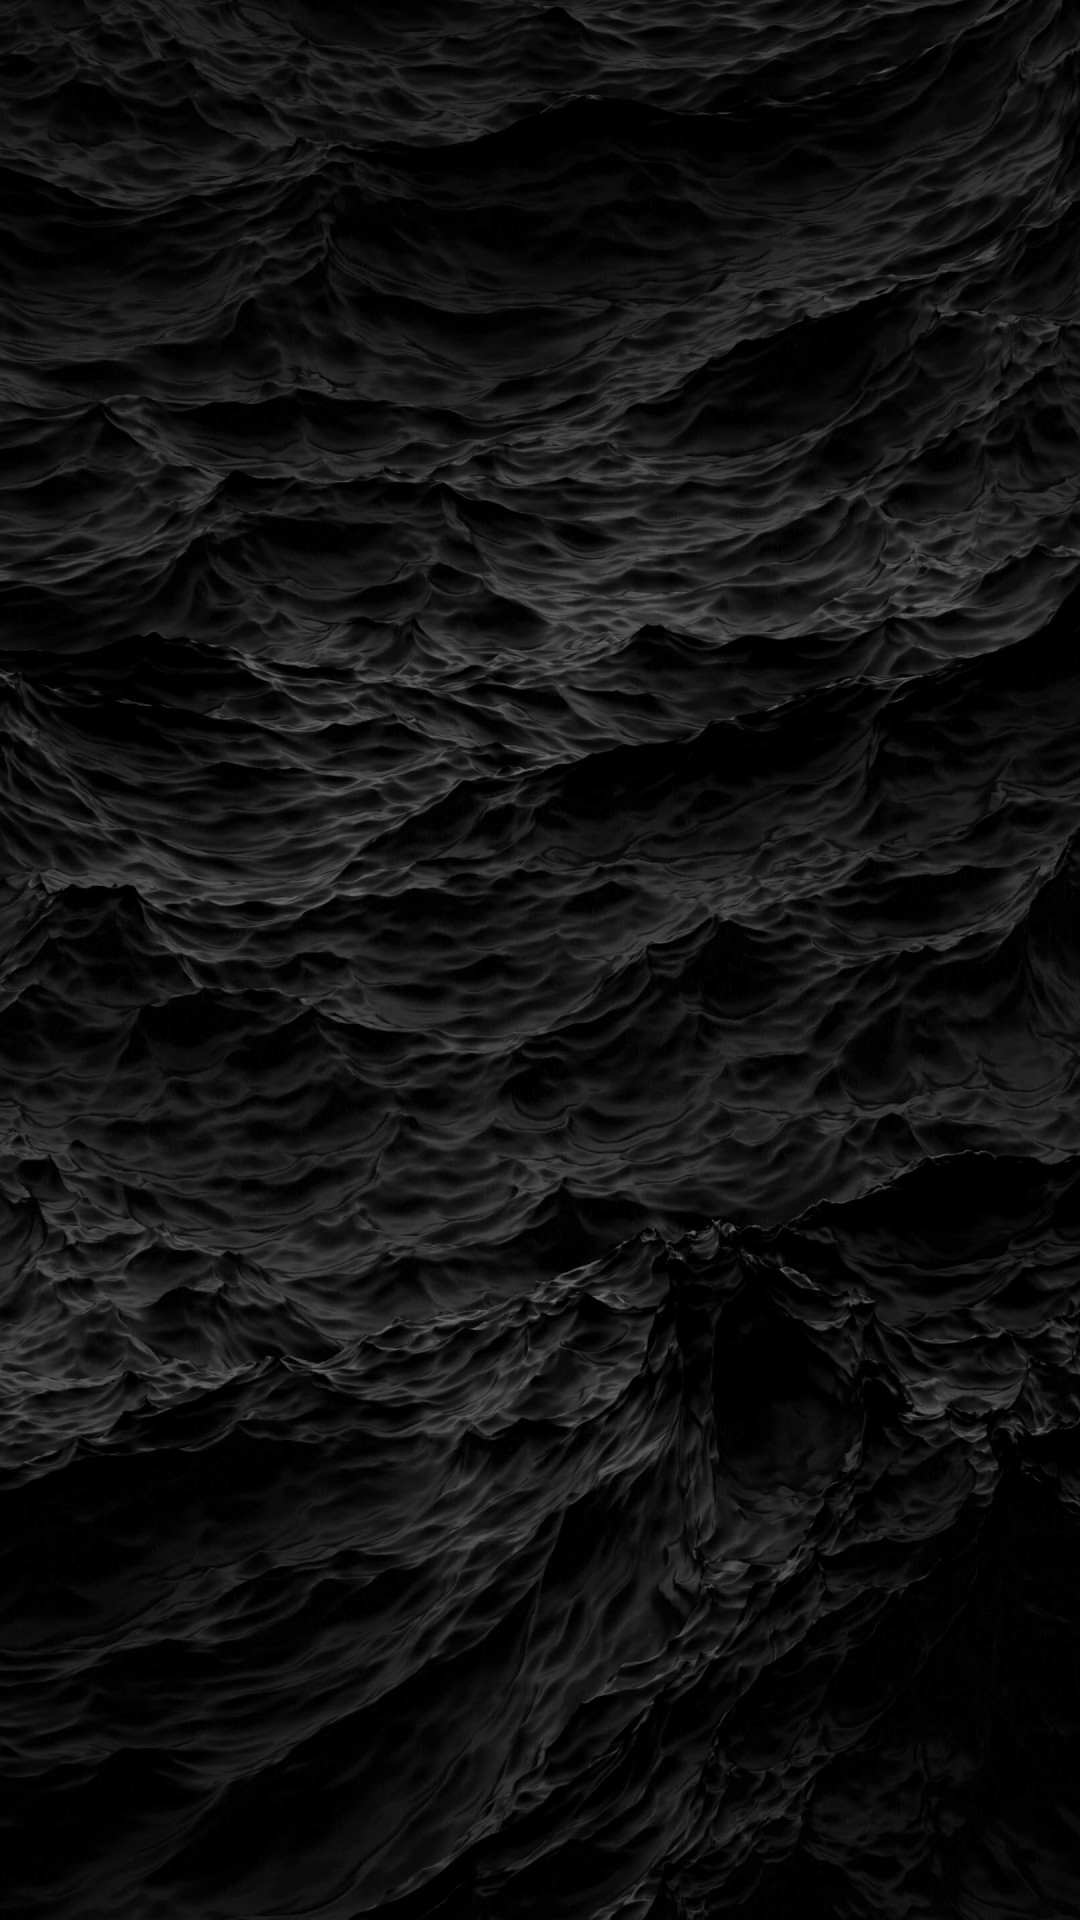 Black Waves Wallpaper for SAMSUNG Galaxy Note 3